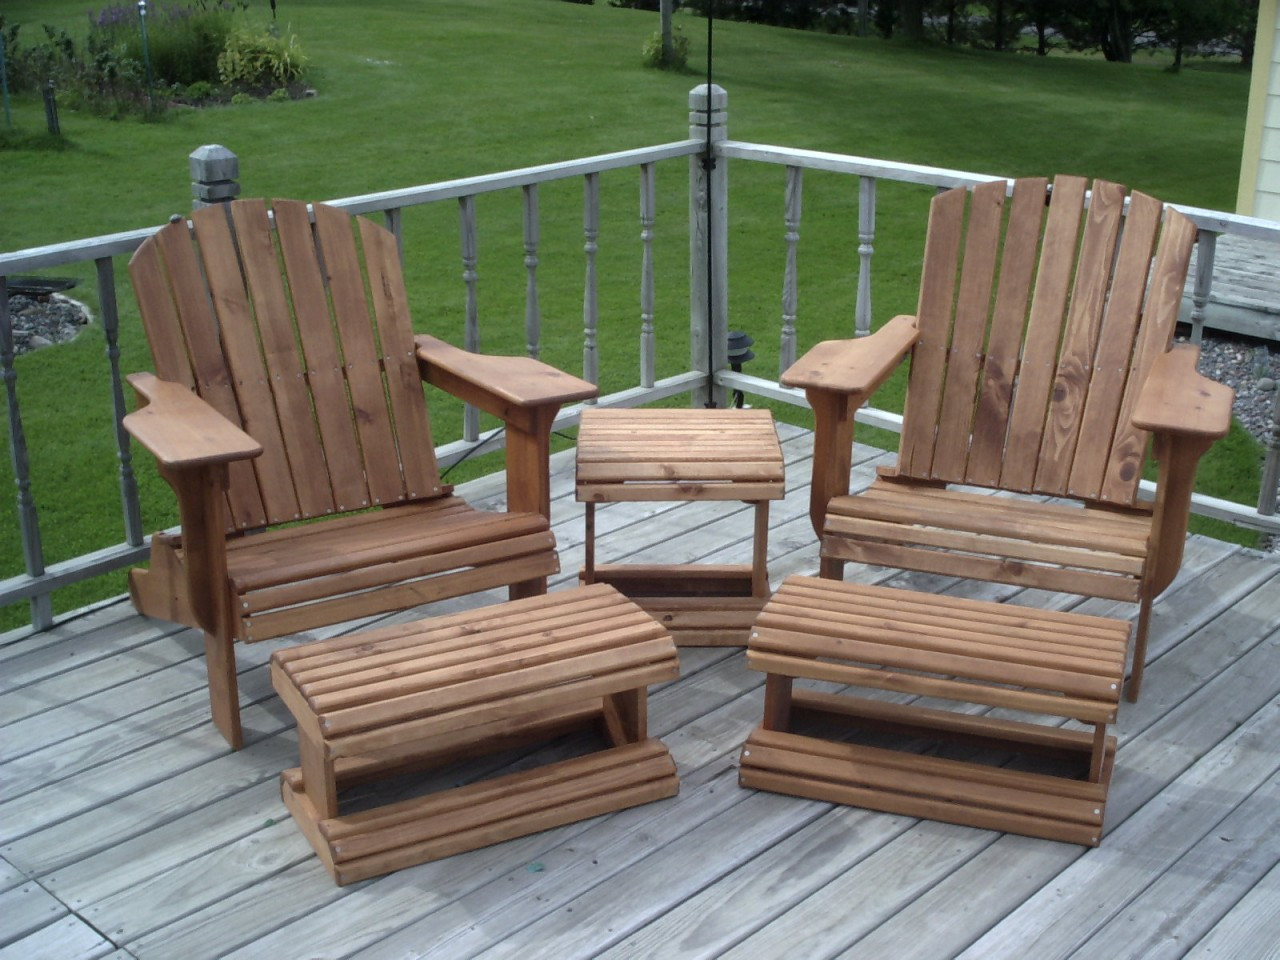 Plans For Adirondack Chairs Adirondack Chair And Ottoman Woodworking Plans Full Size